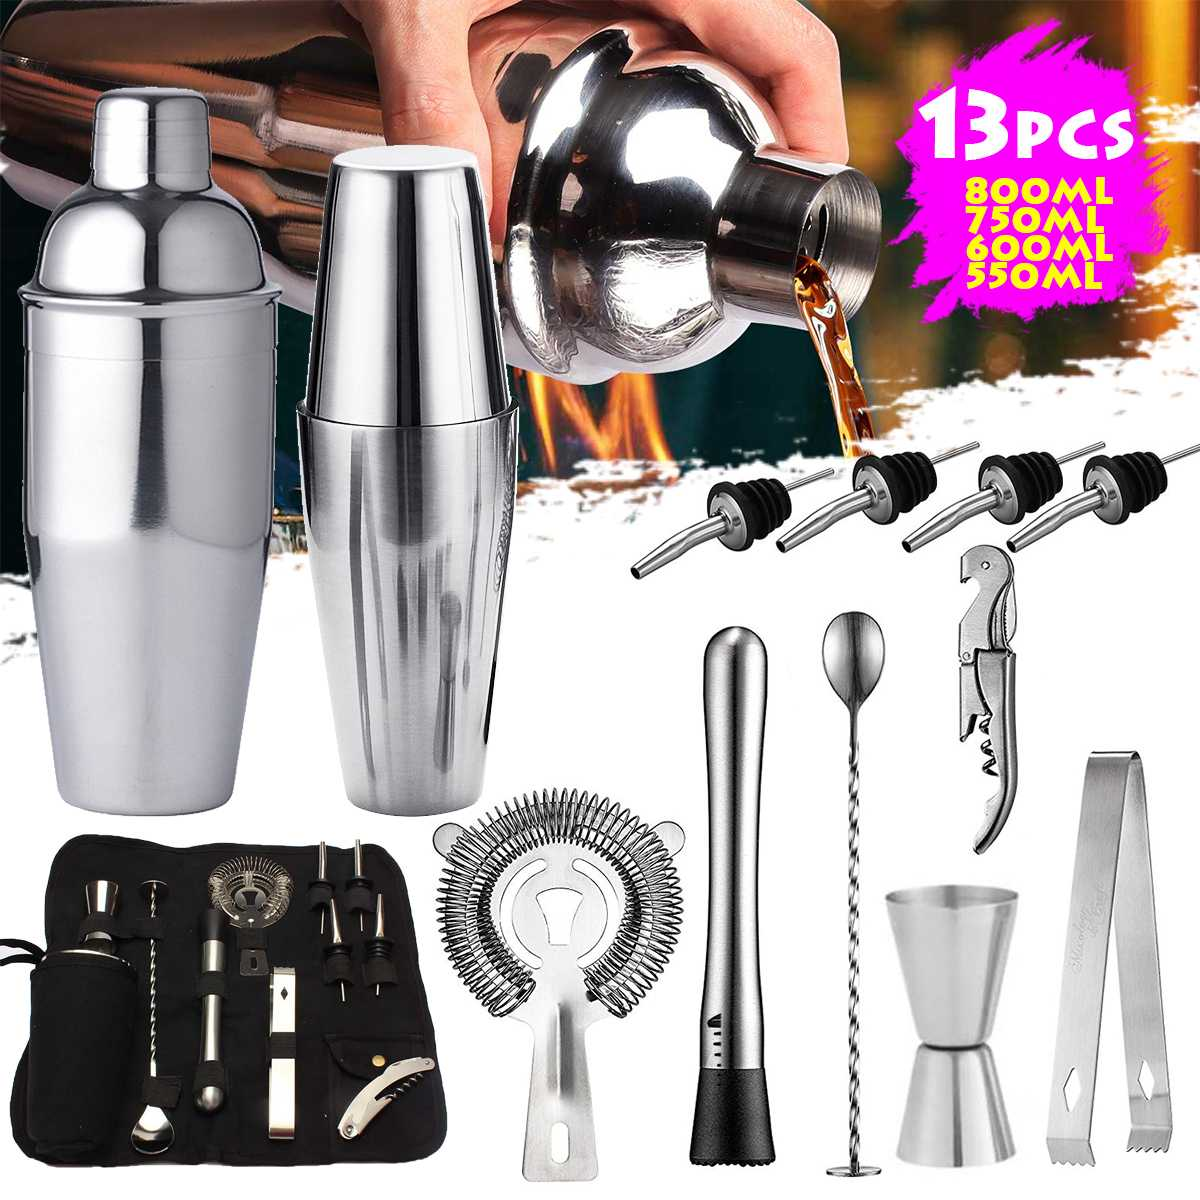 1 Set American Style /British Cocktail Shaker Set Maker Mixer Stainless Steel Professional Cocktail Drink Bartending Tools Bar